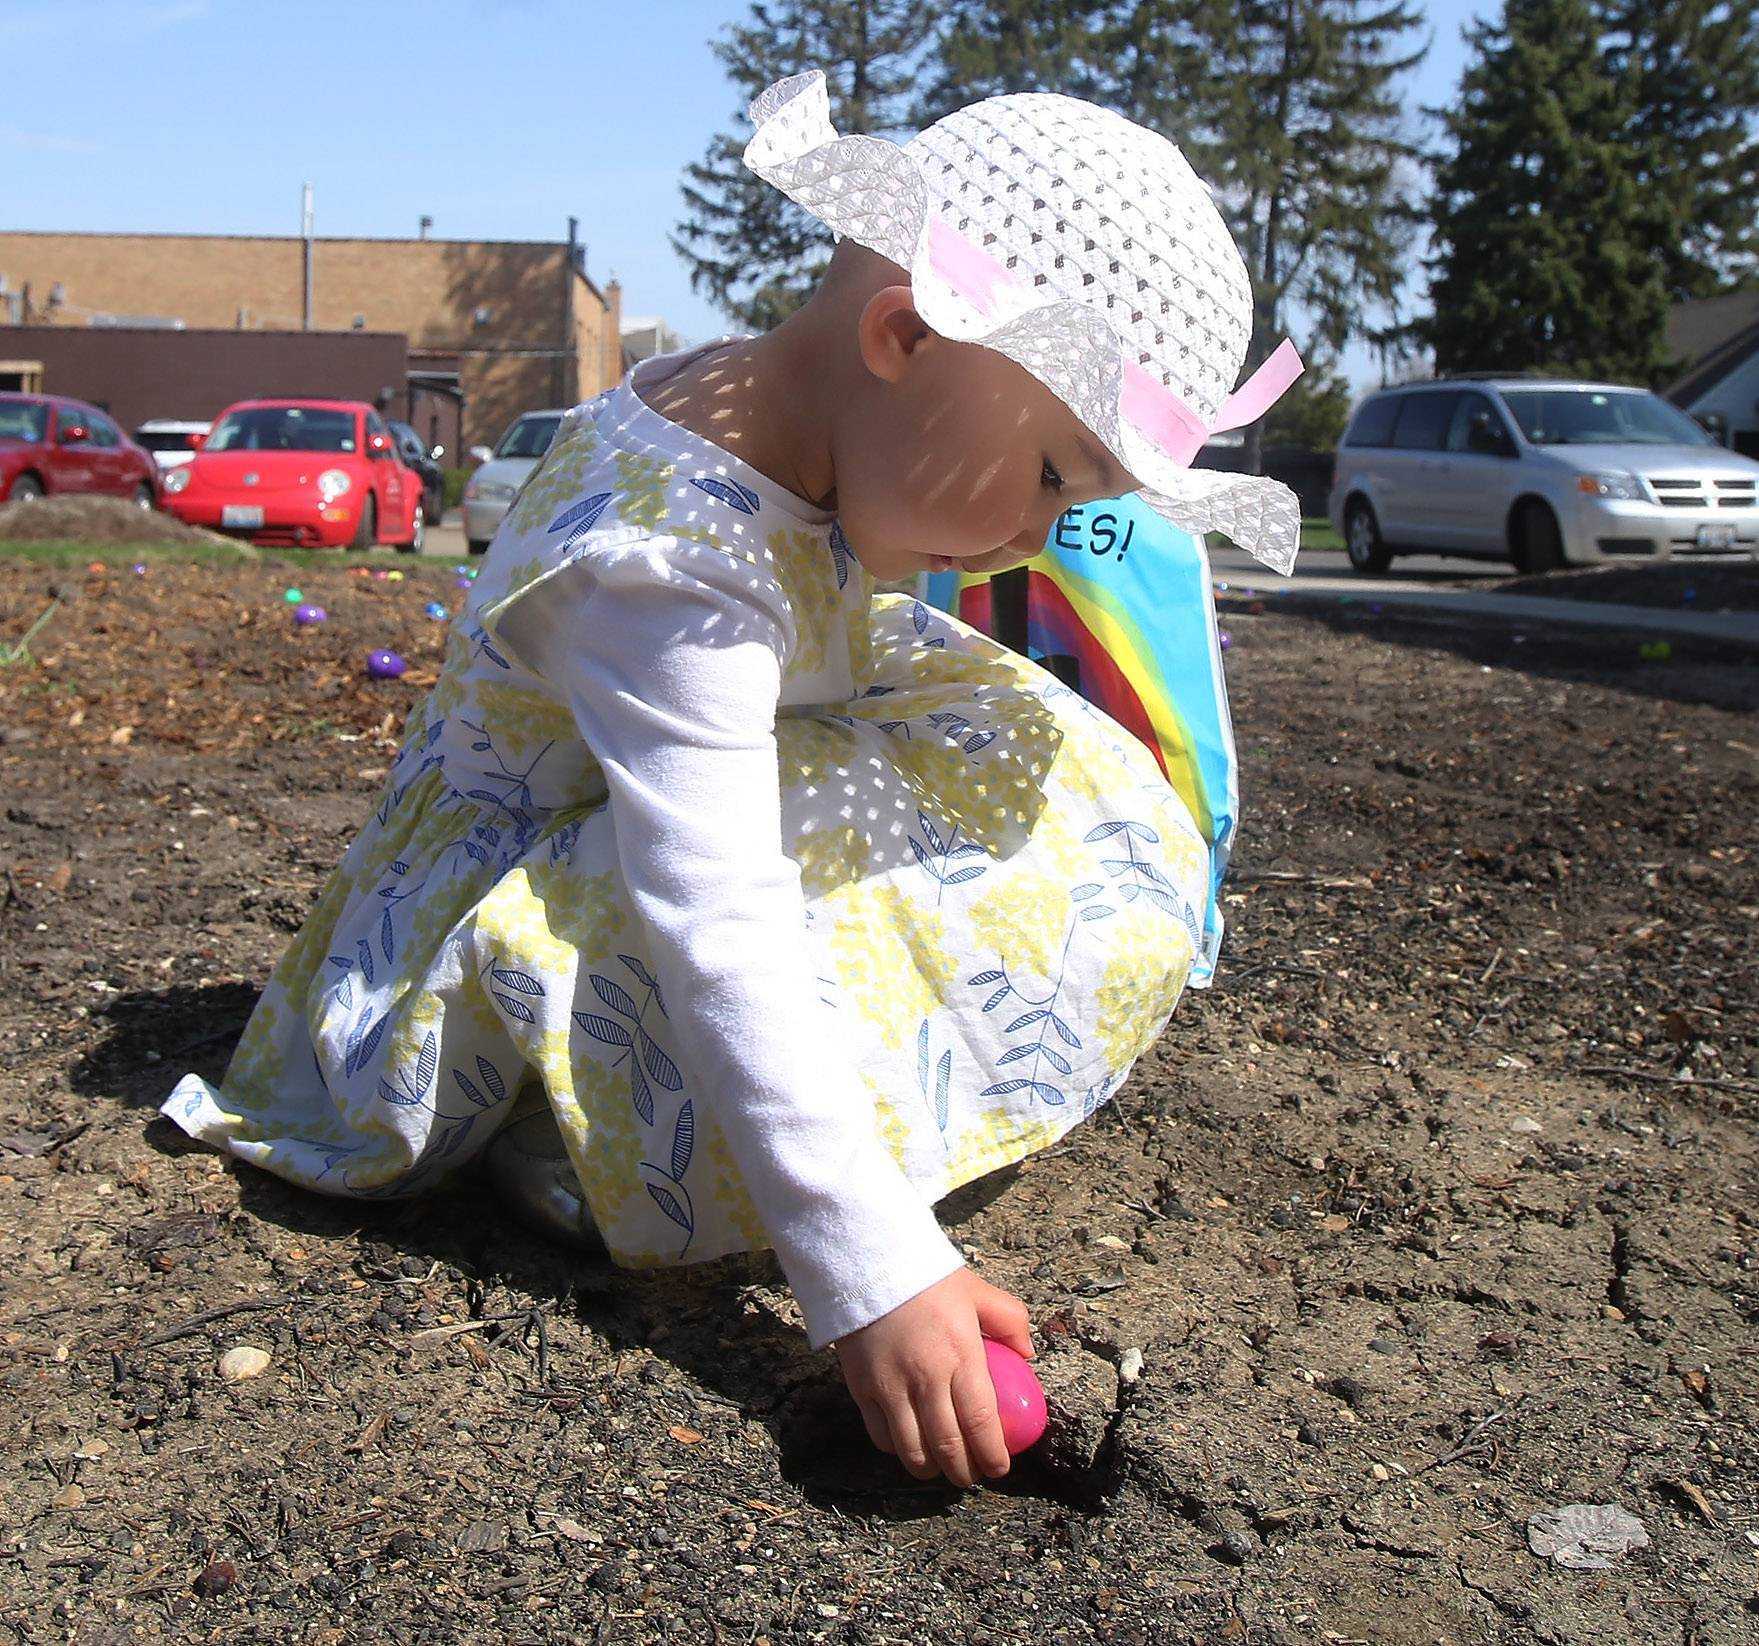 Two-year-old Jolene Tugs of Arlington Heights reaches down for an Easter egg during the Faith Lutheran Church Eggstravaganza event Easter Sunday in Arlington Heights. About 30 children searched for 850 eggs, worked on religious crafts, and listened to the story of Easter.